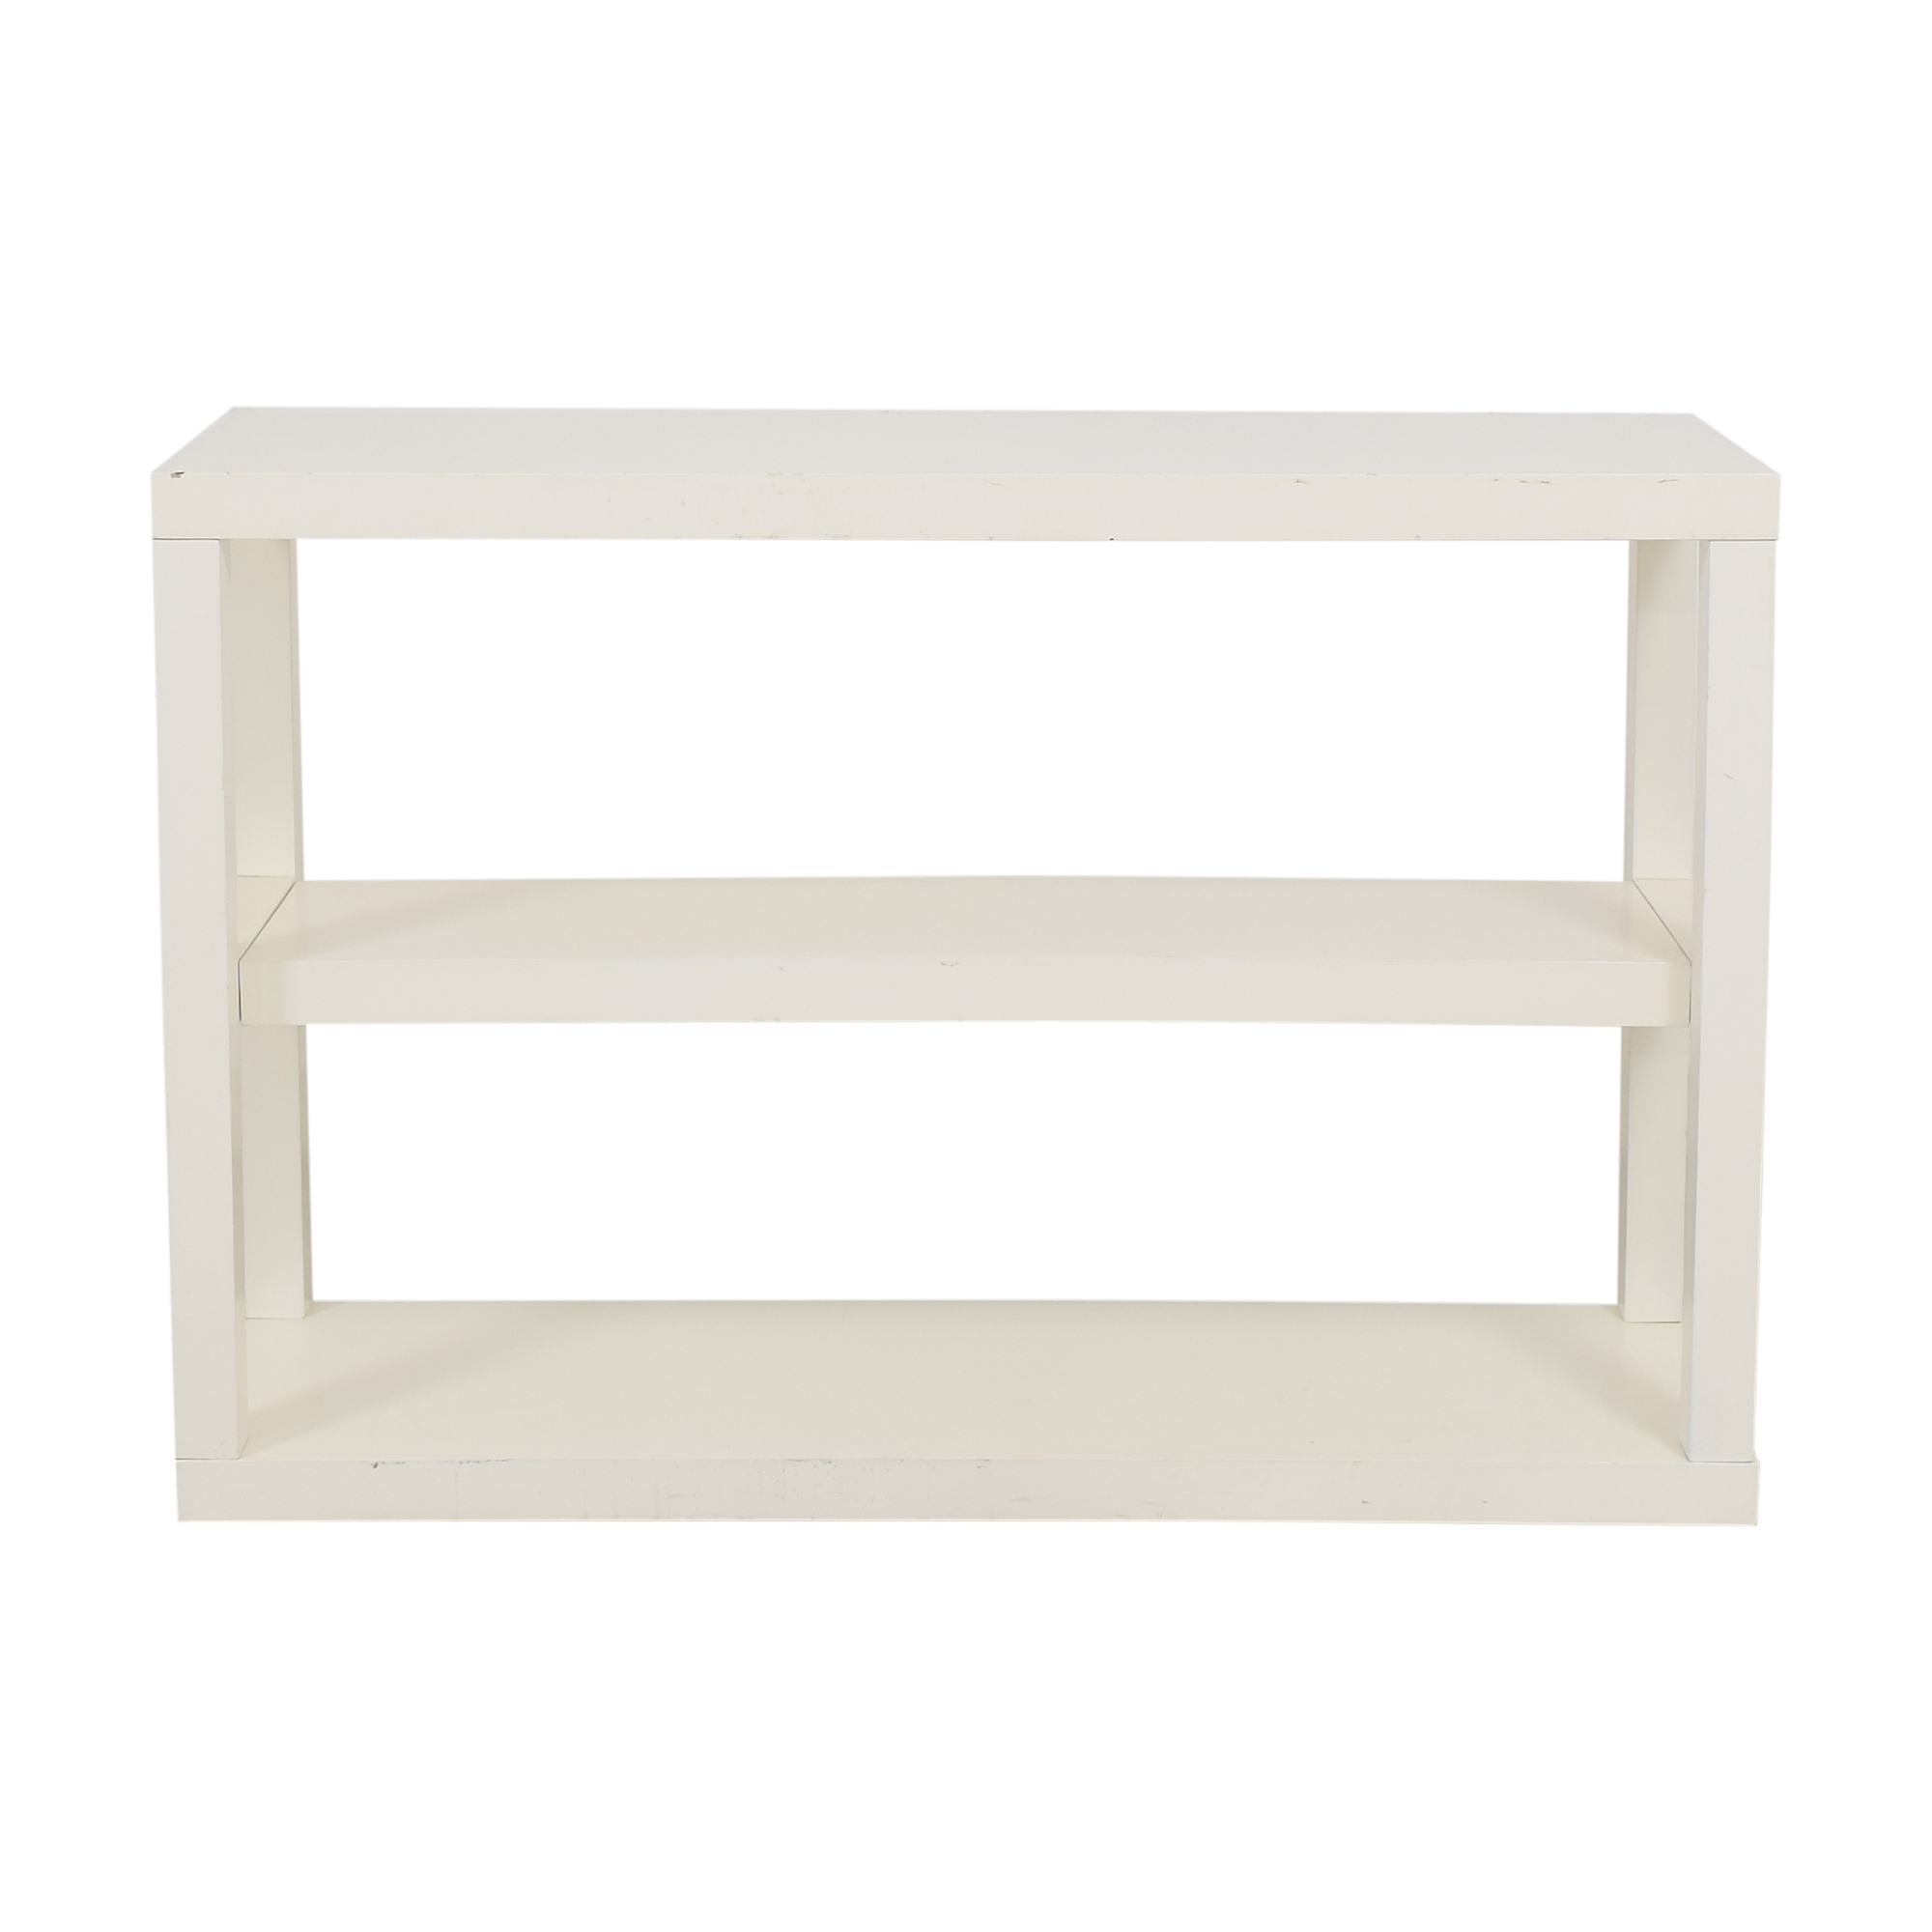 West Elm West Elm Parsons Low Shelf used